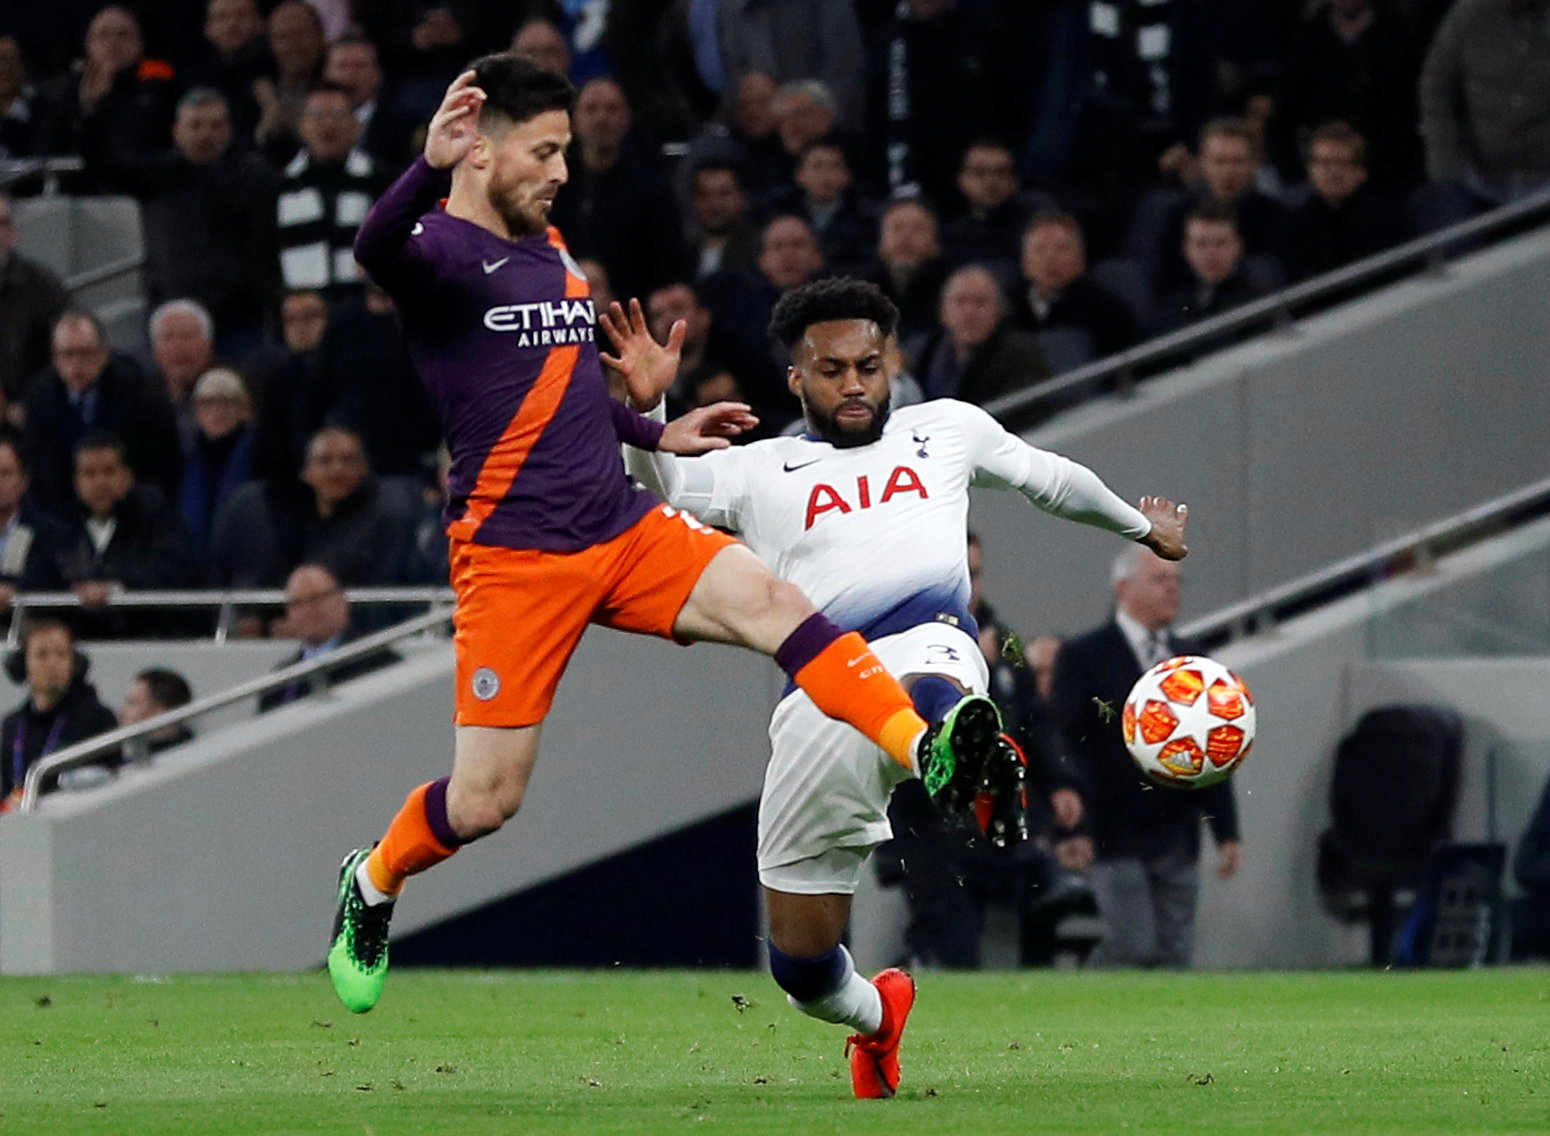 Danny Rose challenges David Sliva during Spurs' Champions League victory over Manchester City. Picture: Action Images